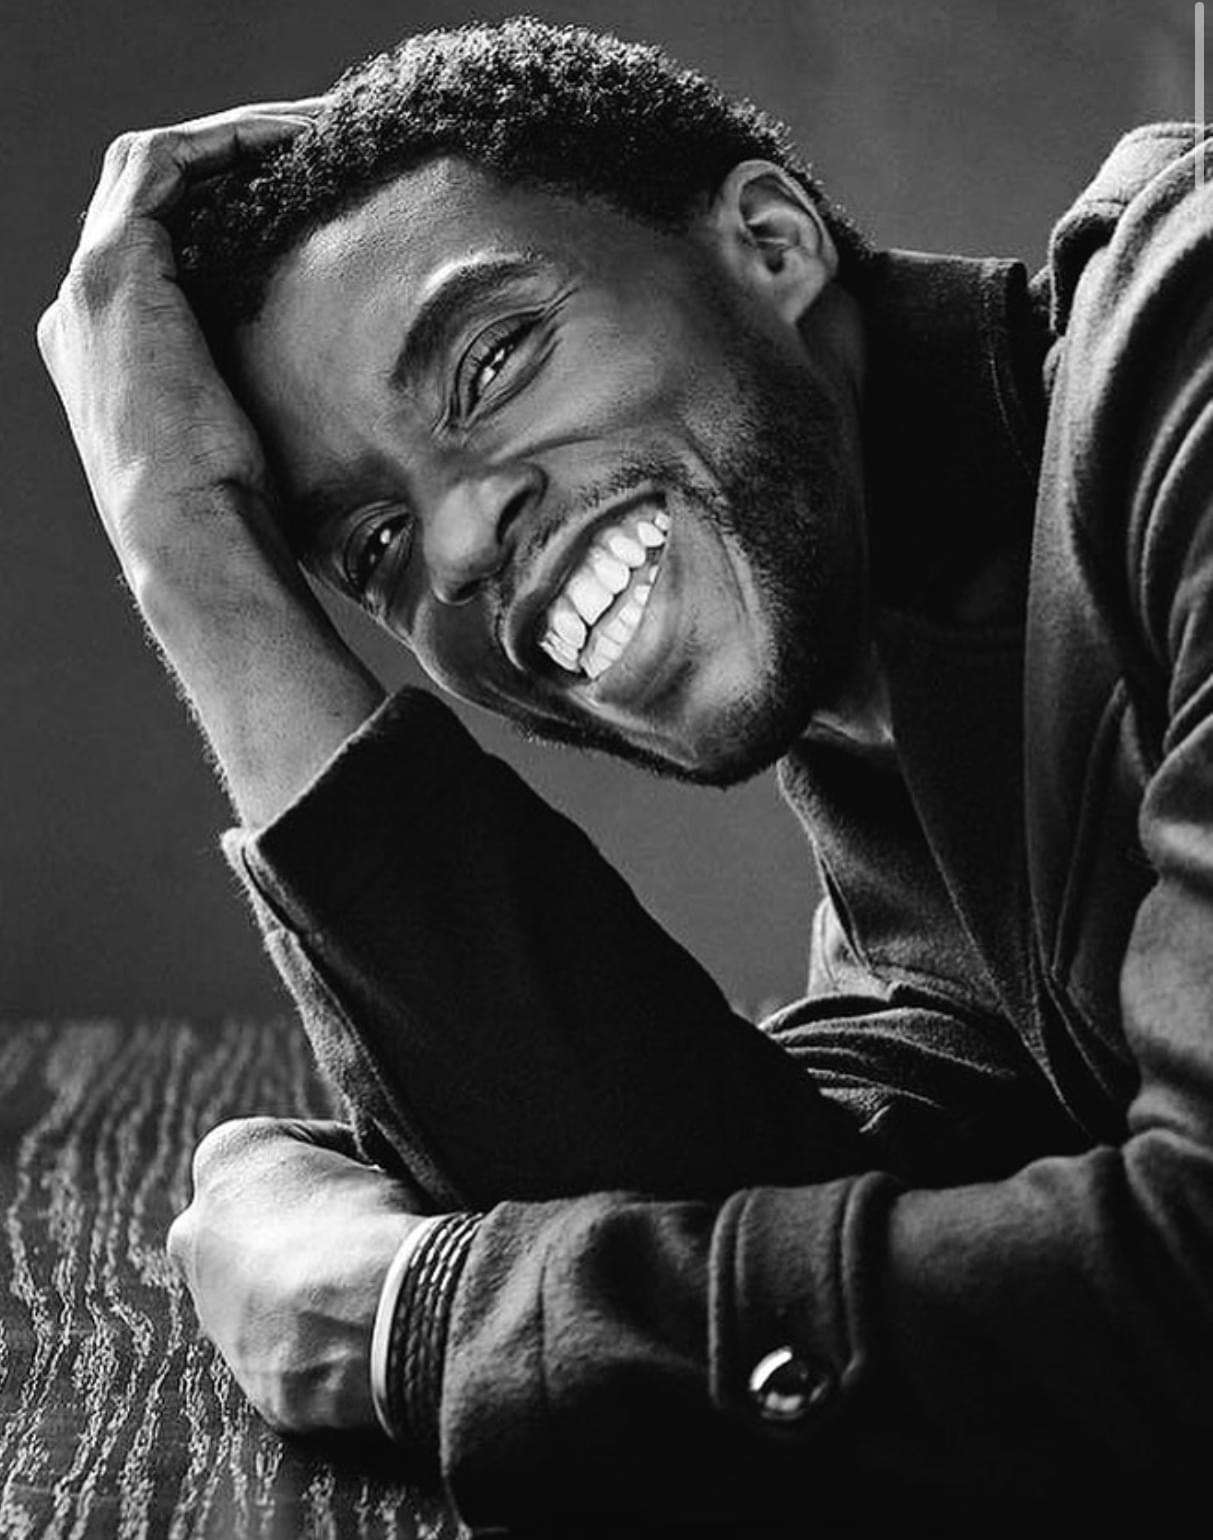 Breaking: 'Black Panther' actor Chadwick Boseman dies of colon cancer at 43